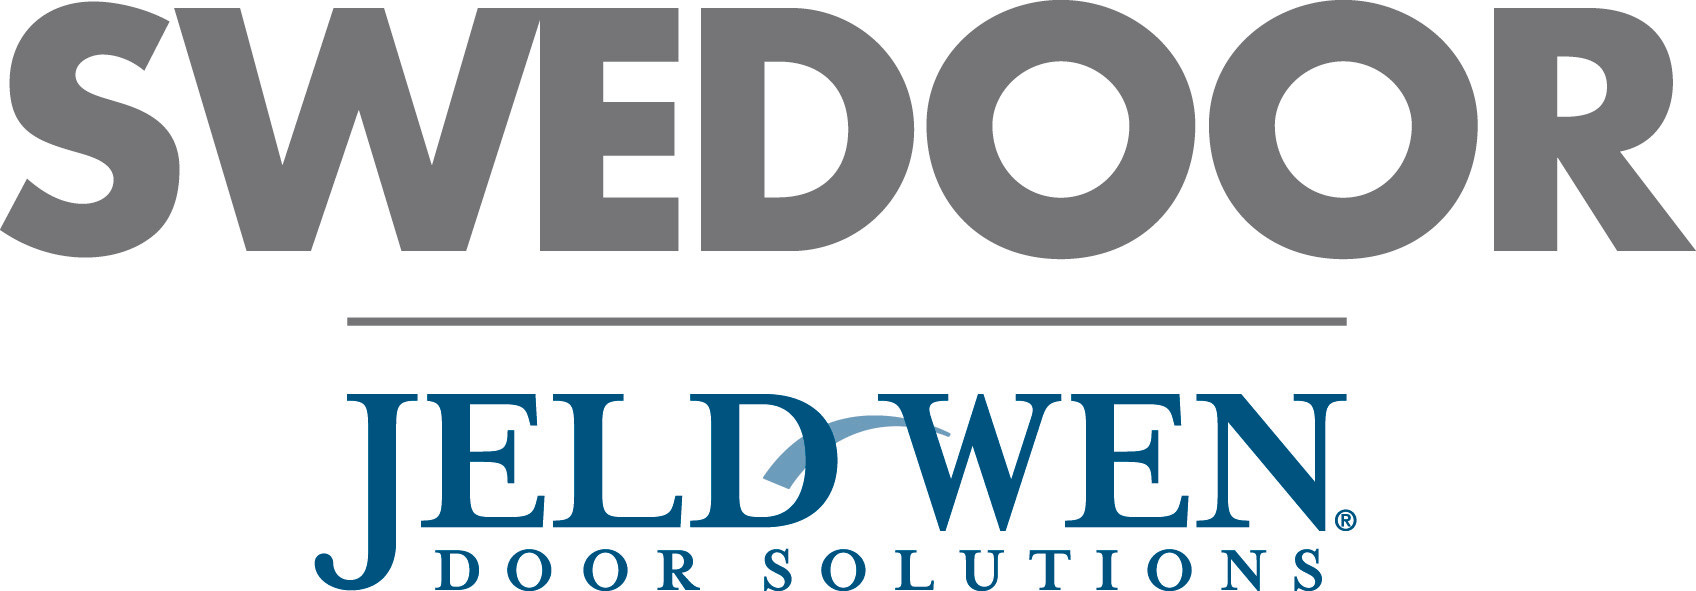 Swedoor_JW_logo